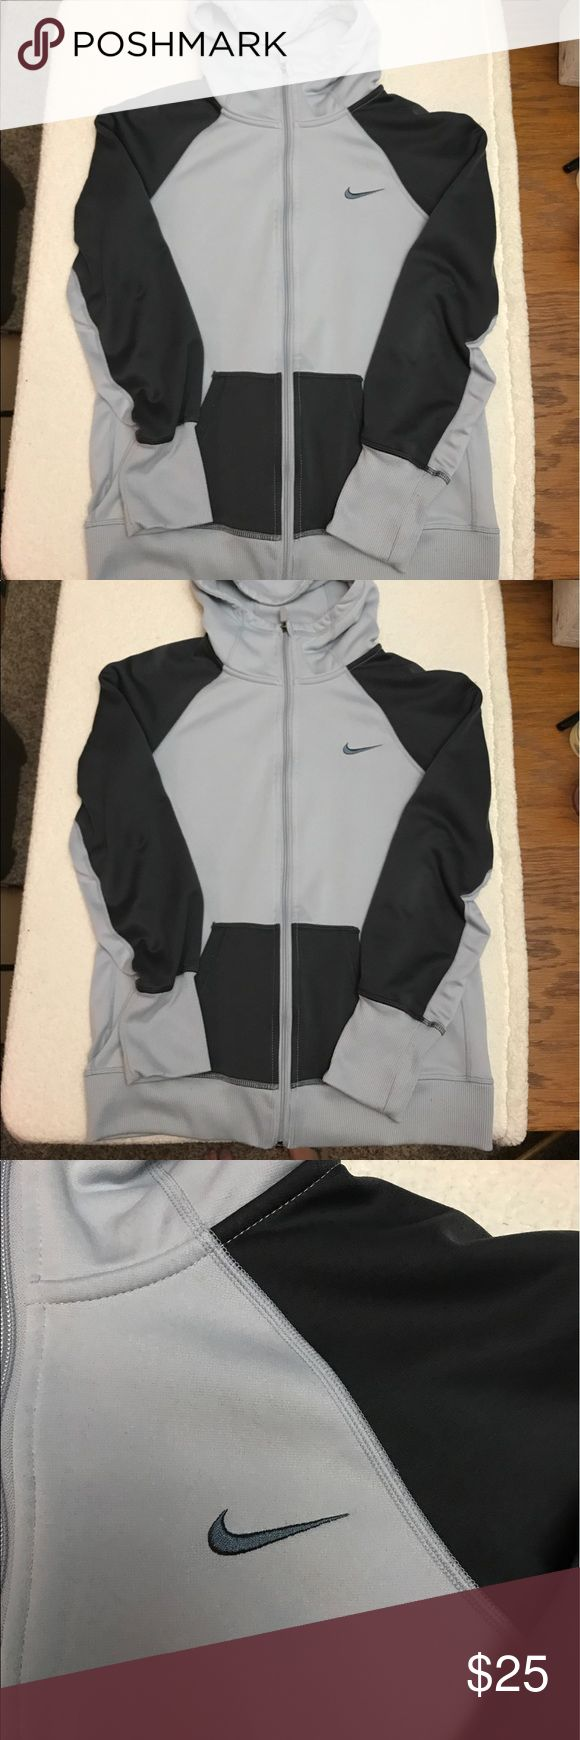 Gray Nike coat Good condition Nike Sweaters